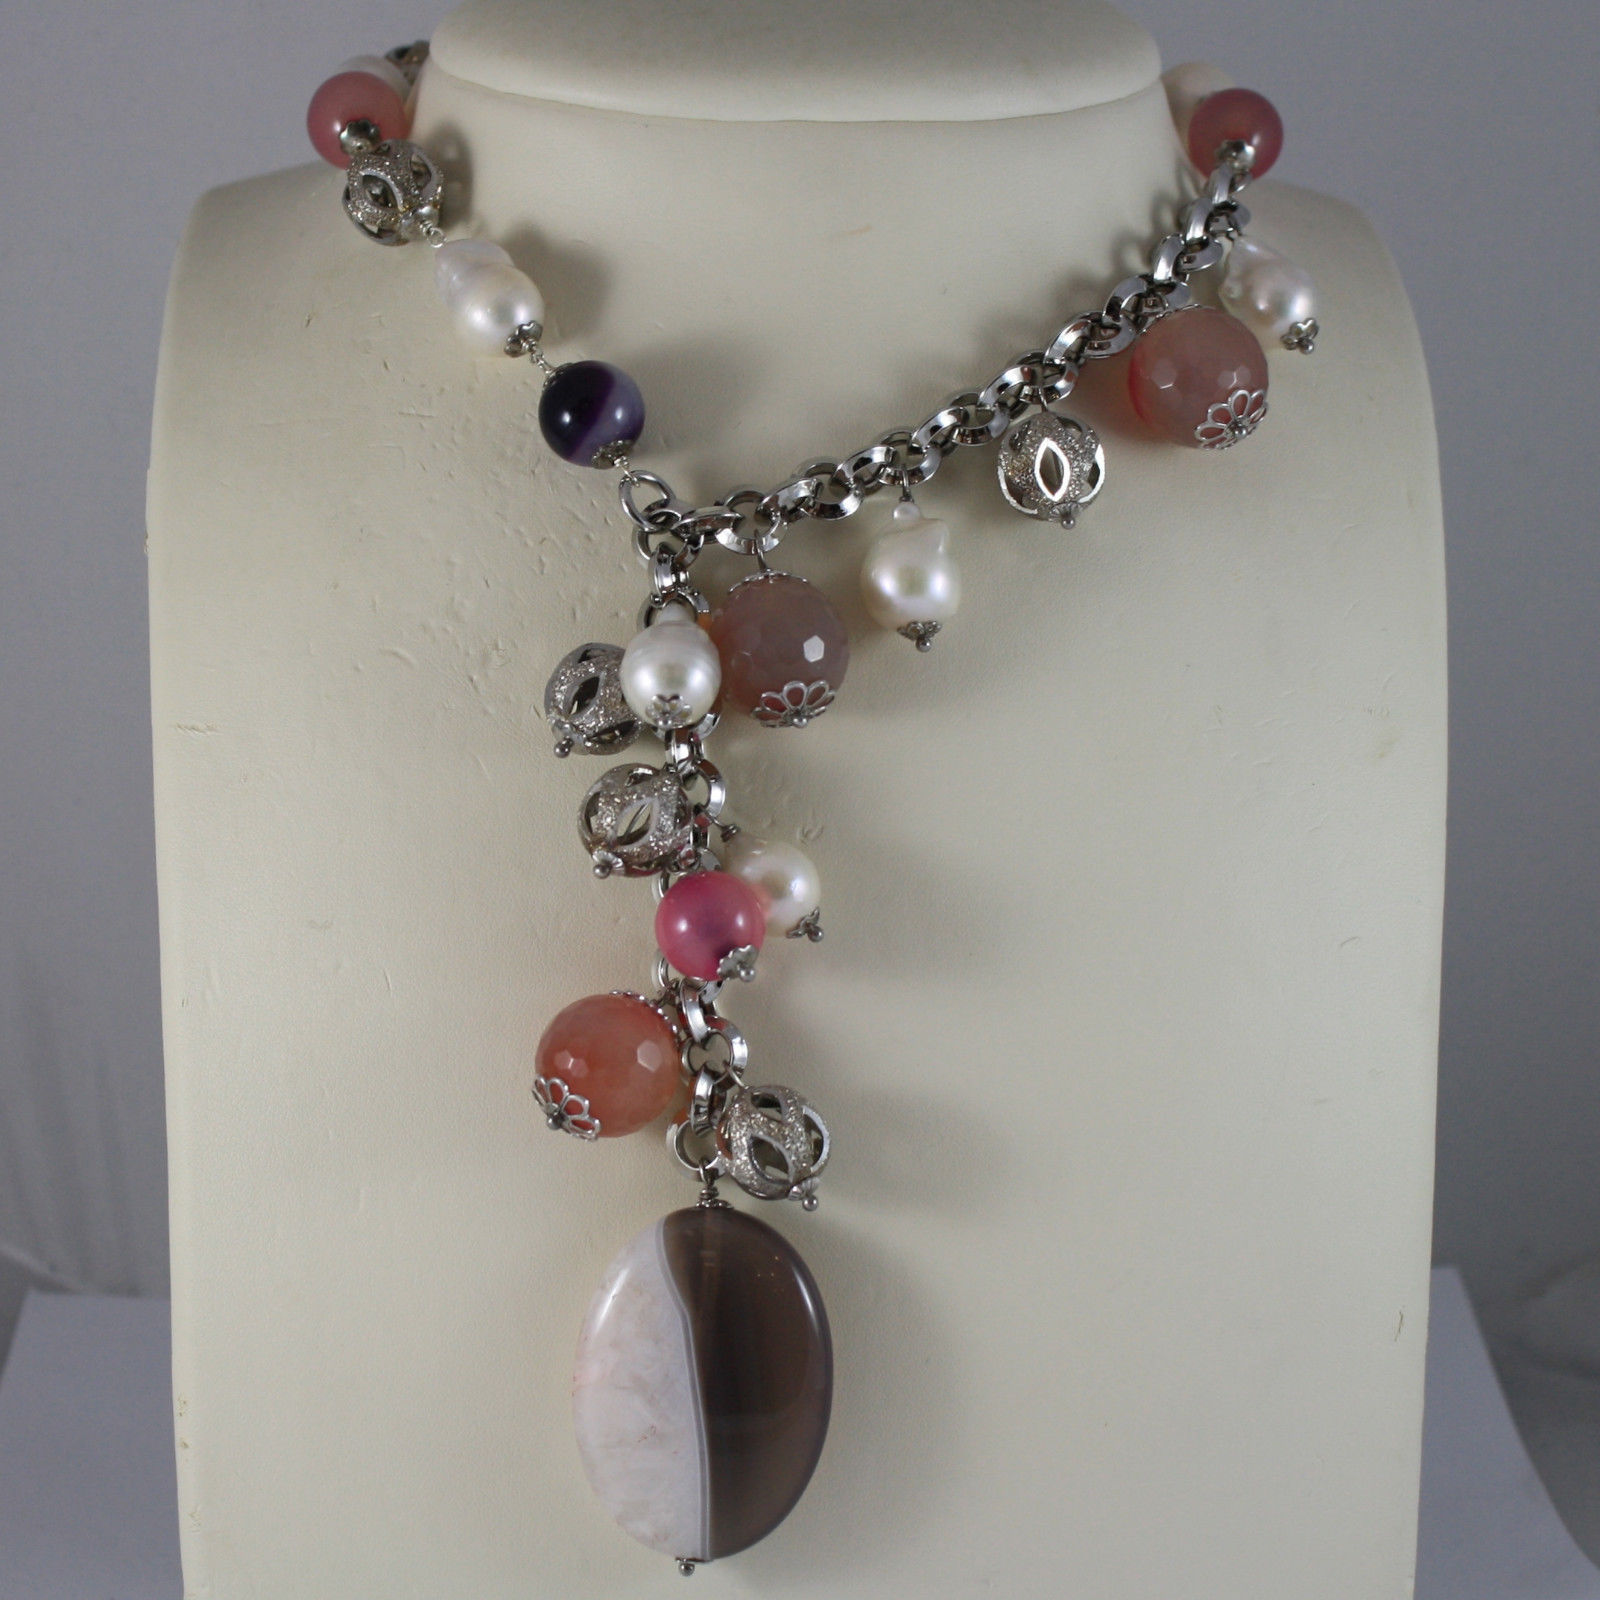 .925 SILVER RHODIUM NECKLACE WITH WHITE PEARLS, AND PINK, PURPLE AND BROWN AGATE